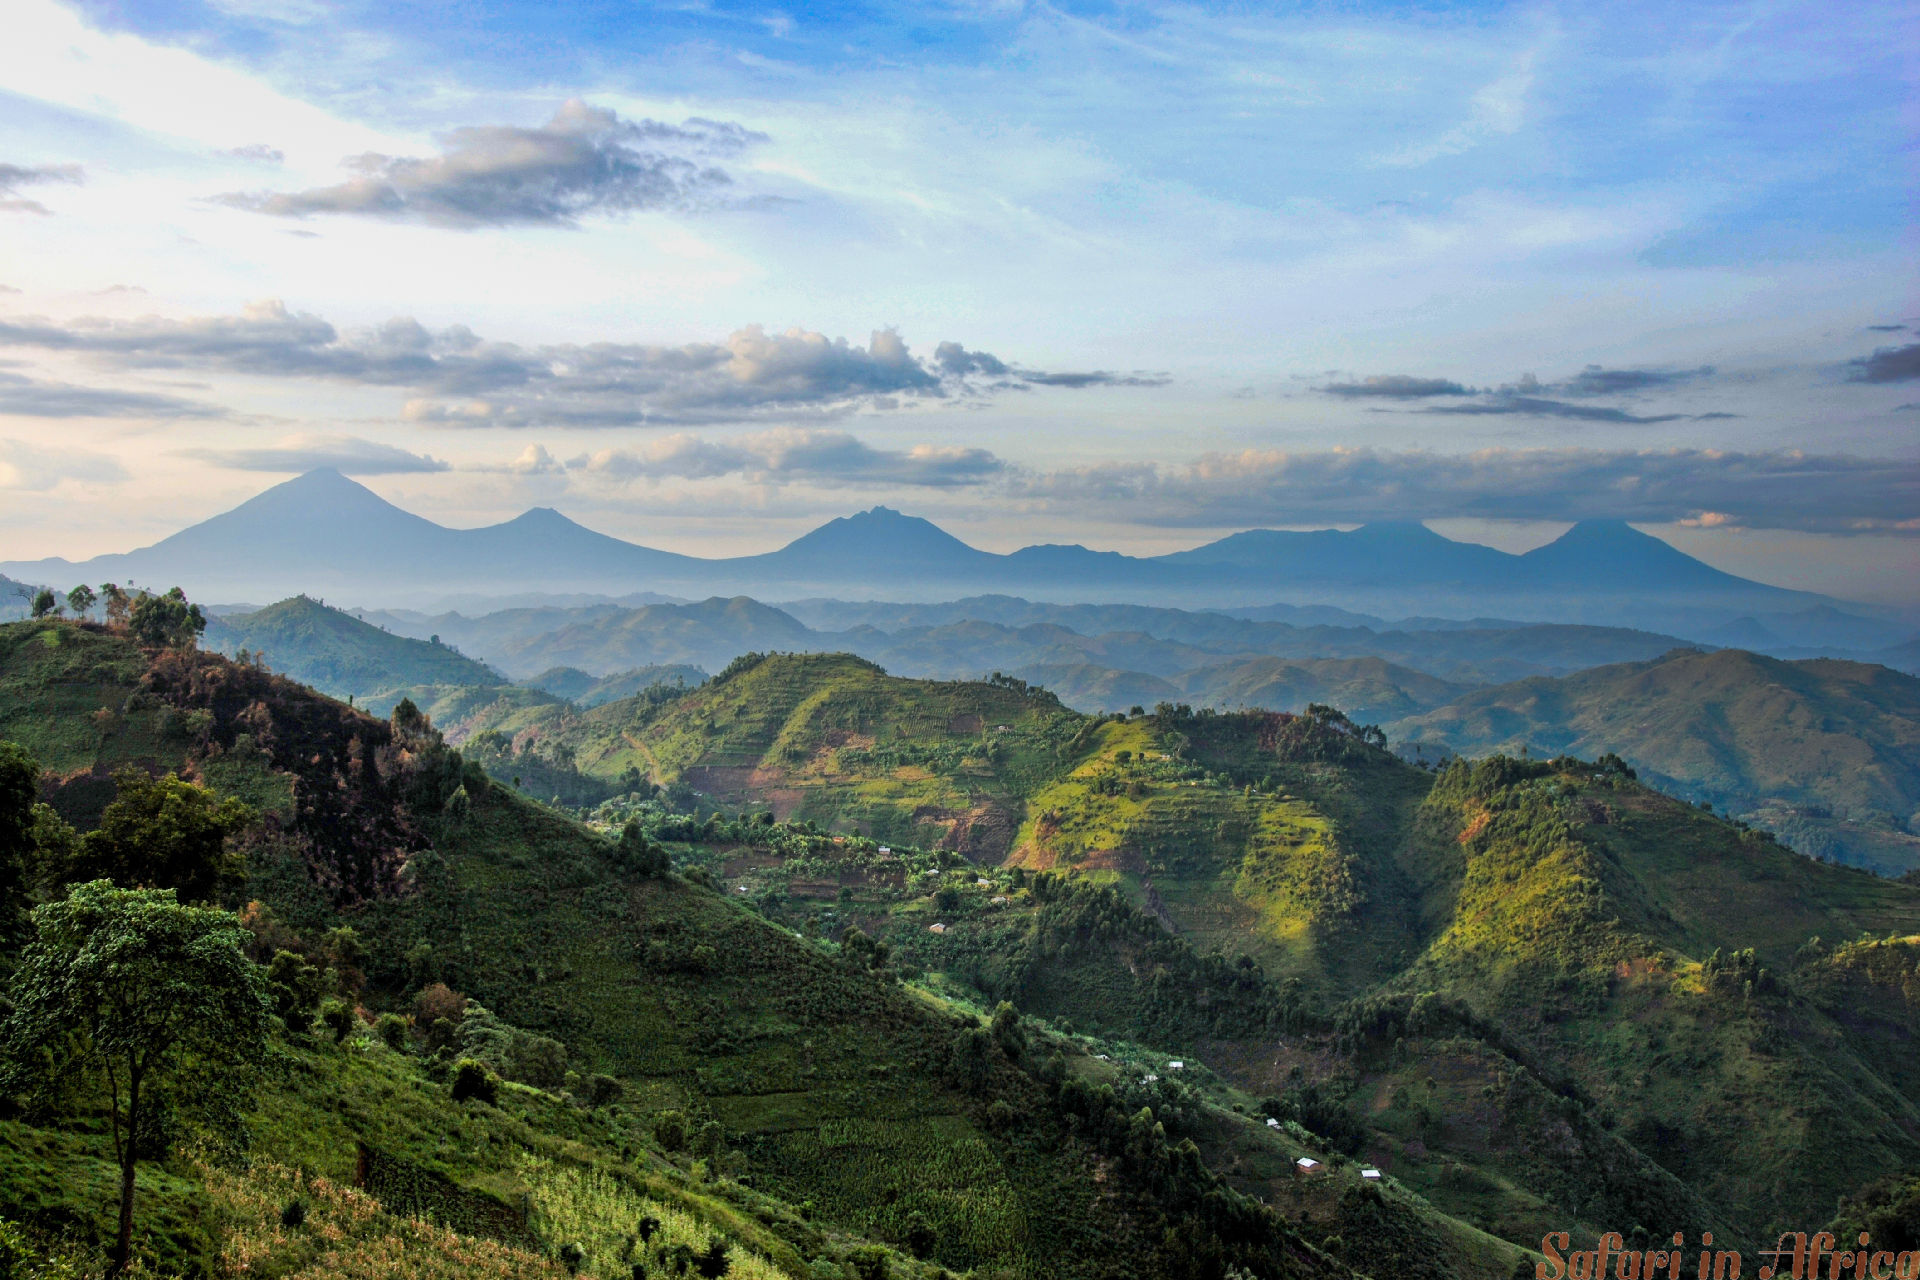 Virunga range viewed from Nkuringo, Uganda